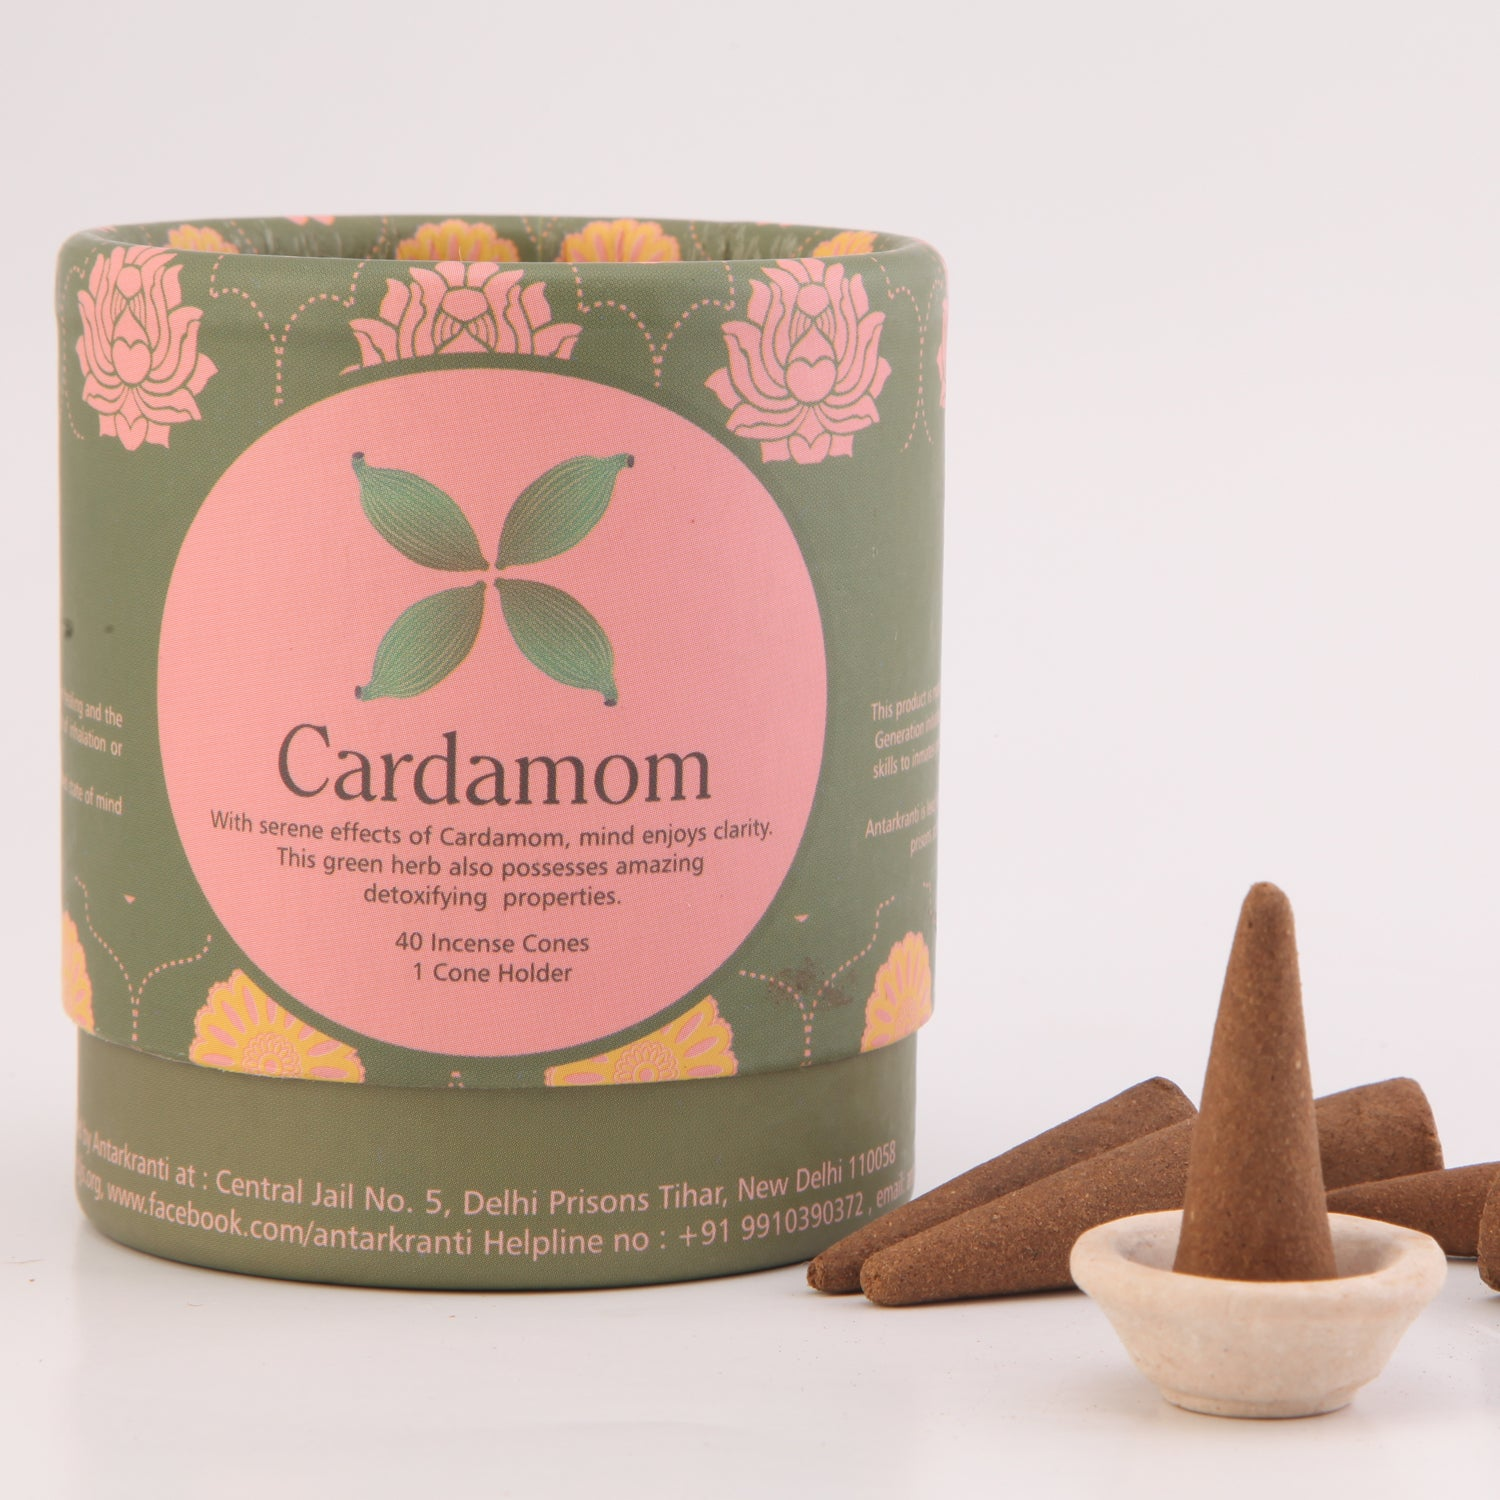 Cardamom Natural Incense Dhoop cones with a Cone holder | Charcoal free